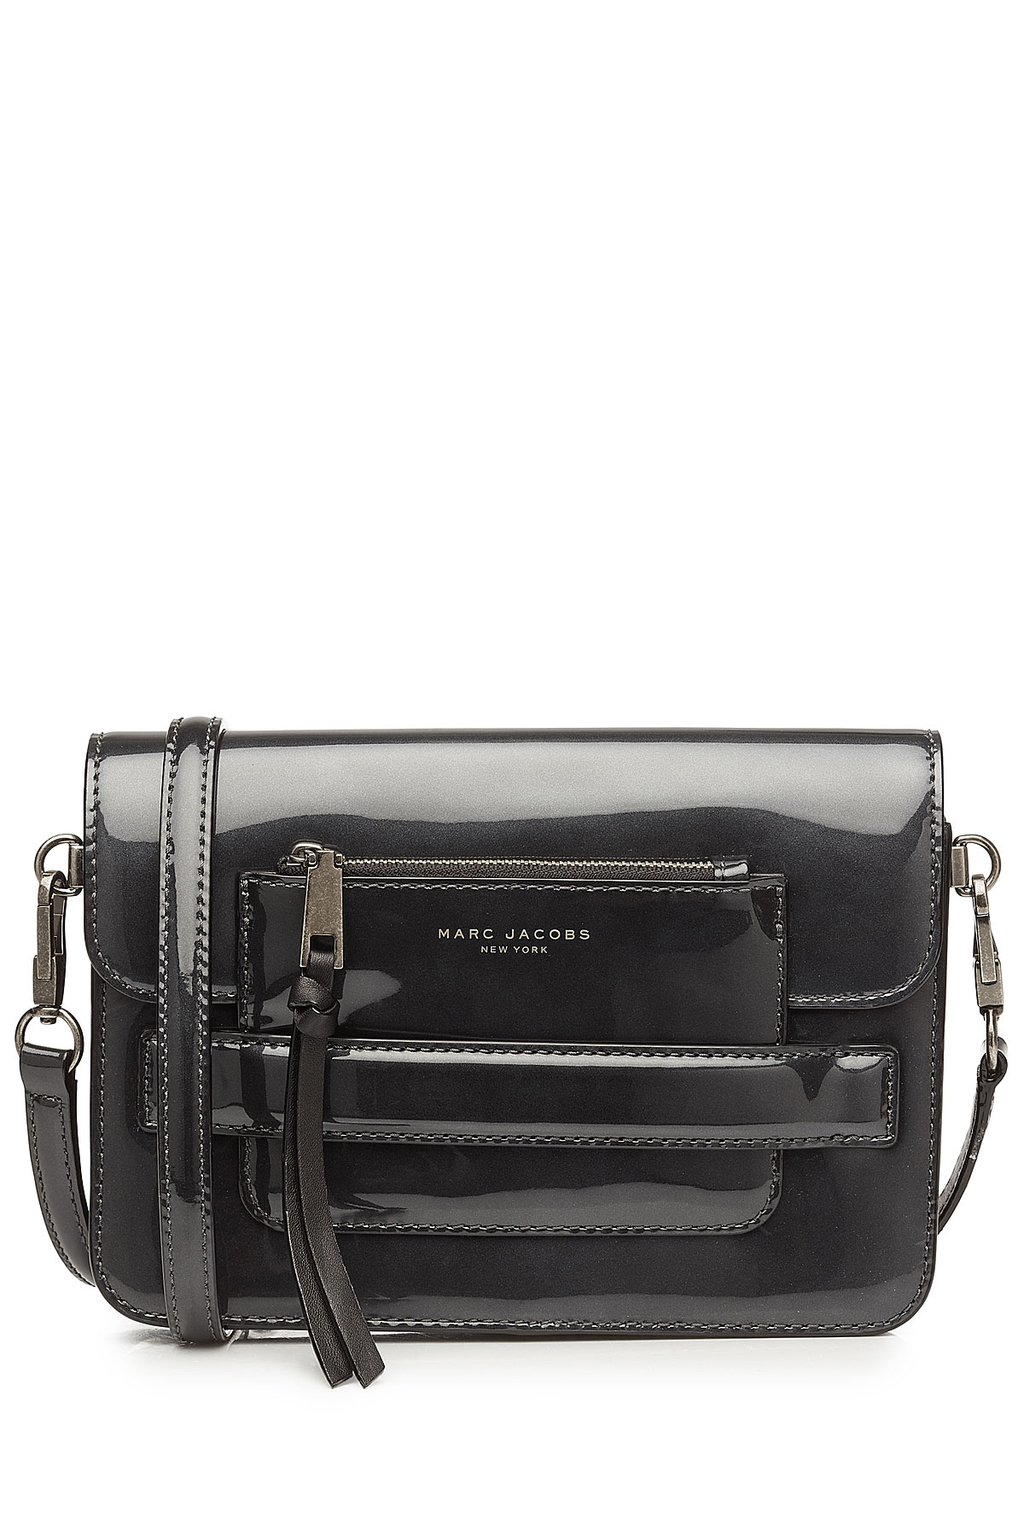 Madison Patent Leather Shoulder Bag Silver - predominant colour: black; occasions: casual, creative work; type of pattern: standard; style: shoulder; length: across body/long; size: standard; material: leather; pattern: plain; finish: patent; wardrobe: investment; season: a/w 2016